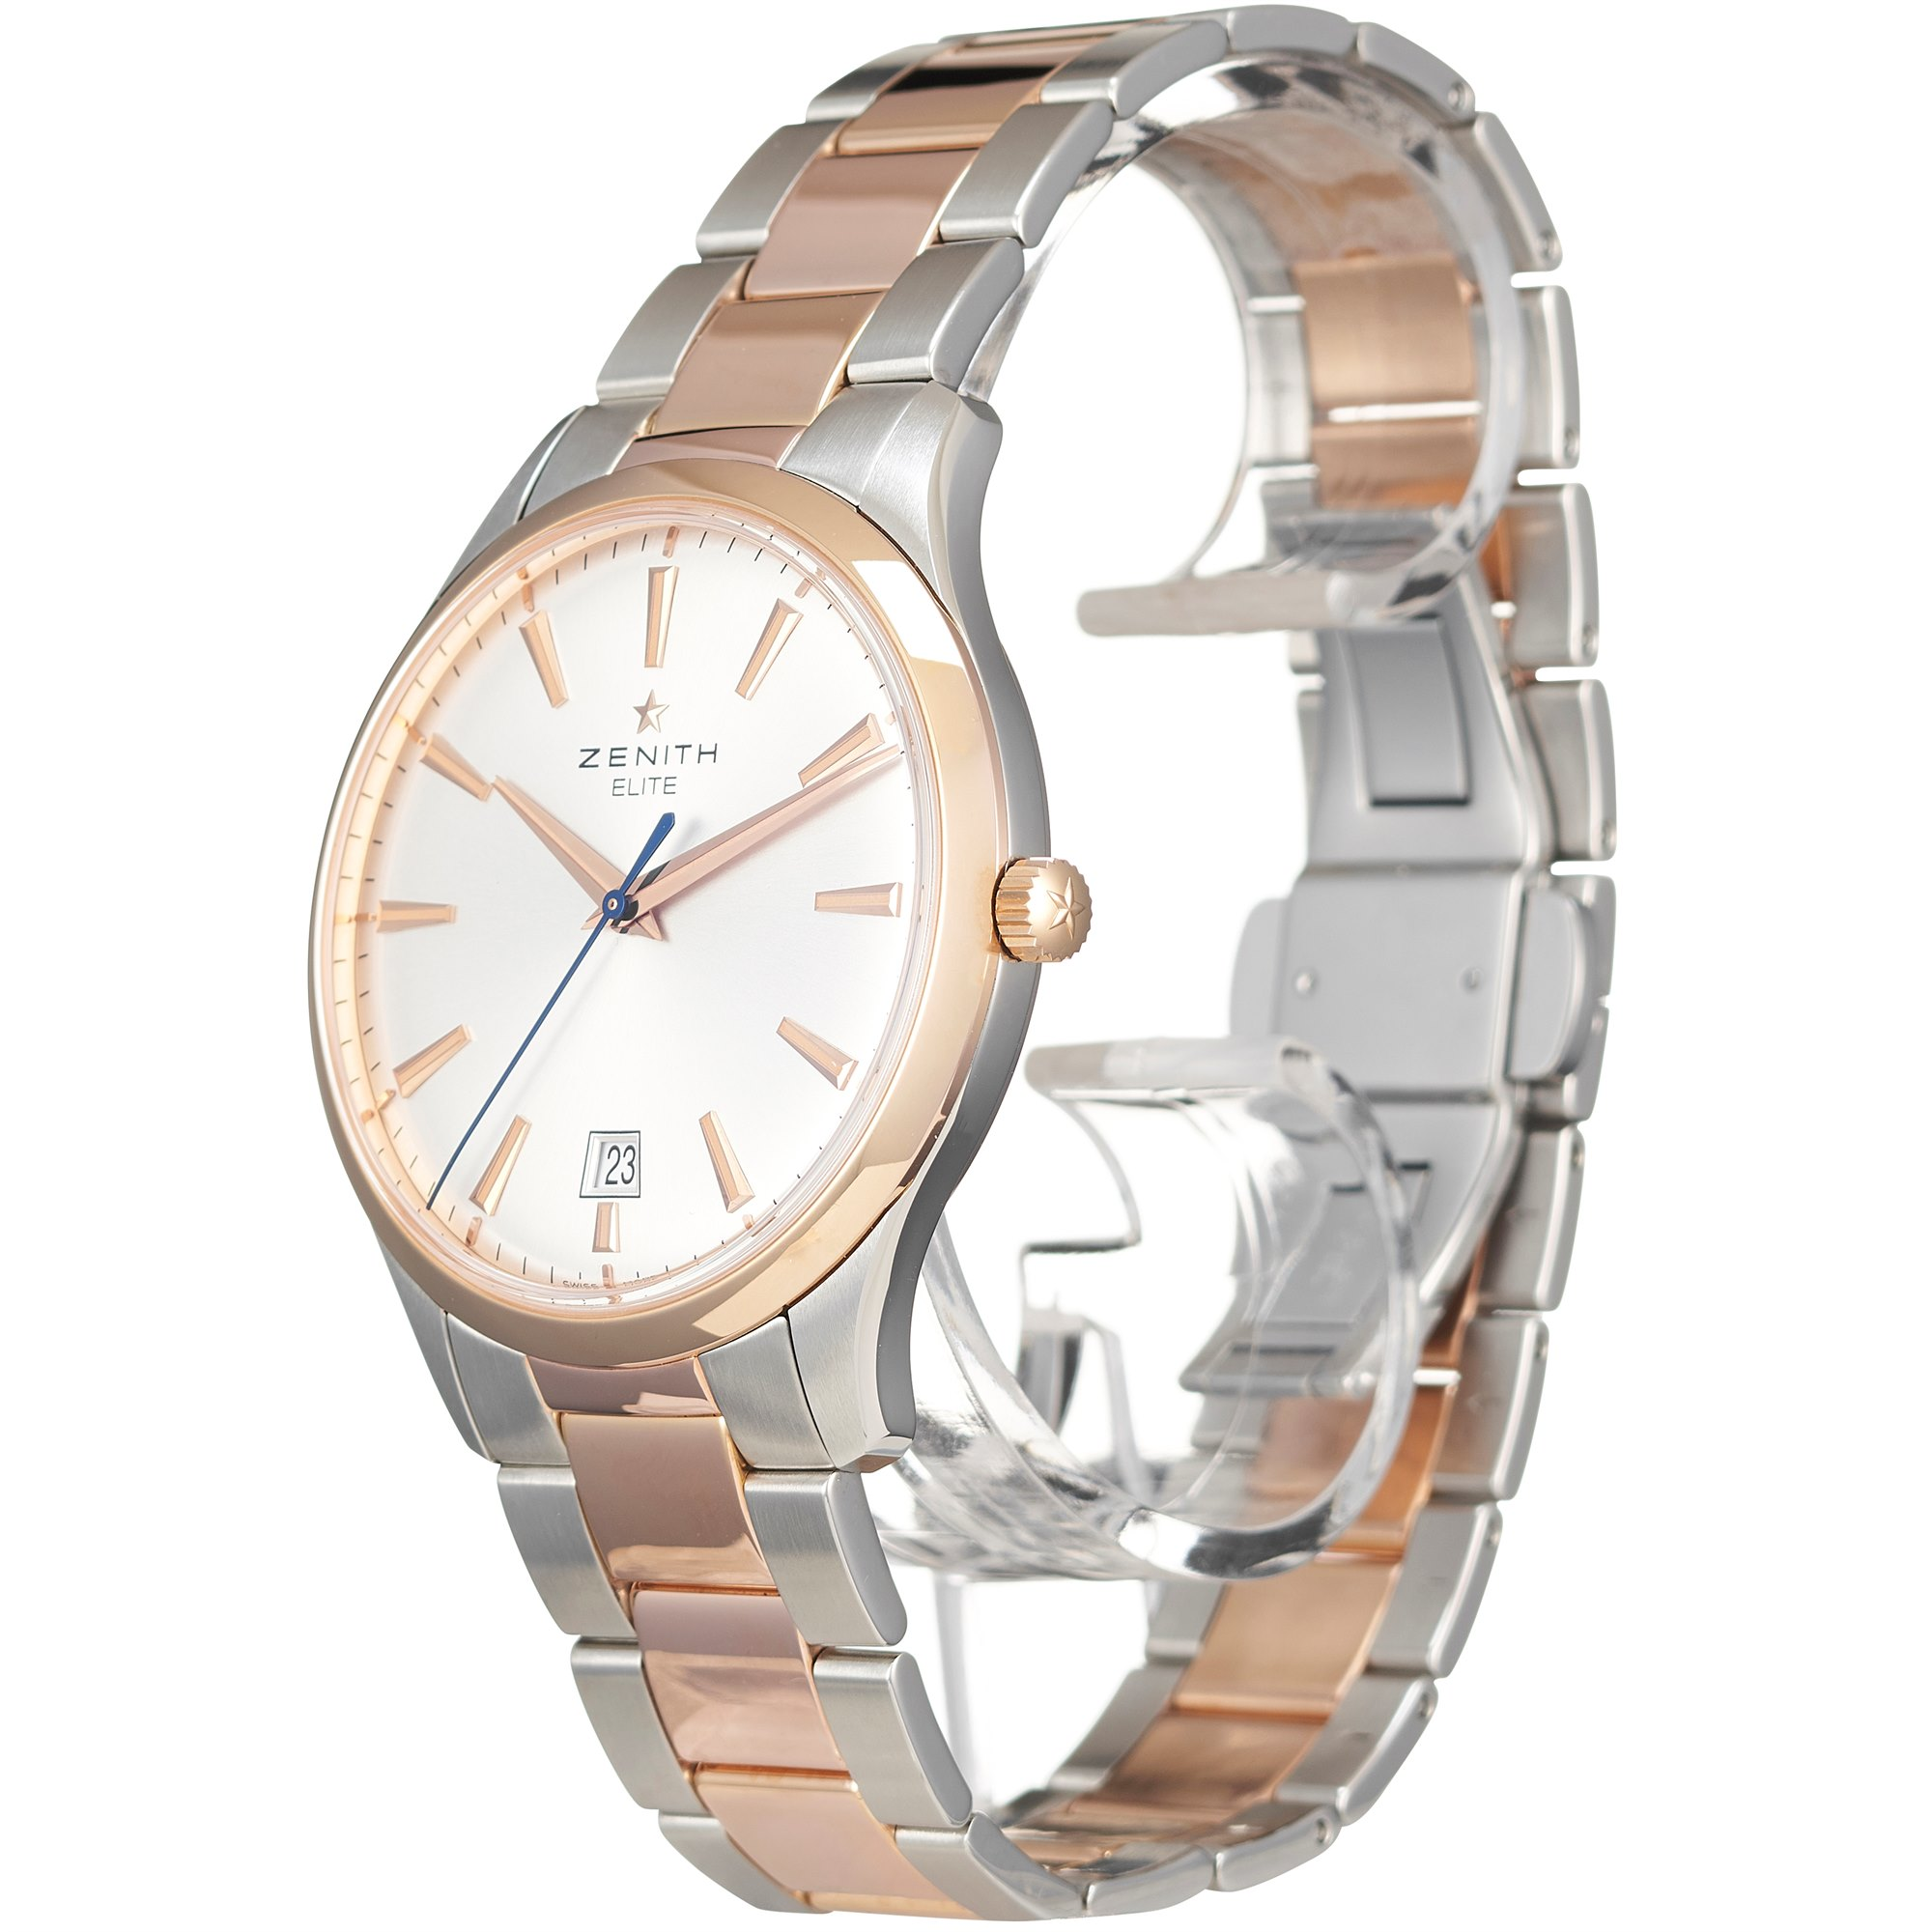 Zenith Captain Central Second Stainless Steel & Rose Gold 51.2020.670/01.M2020